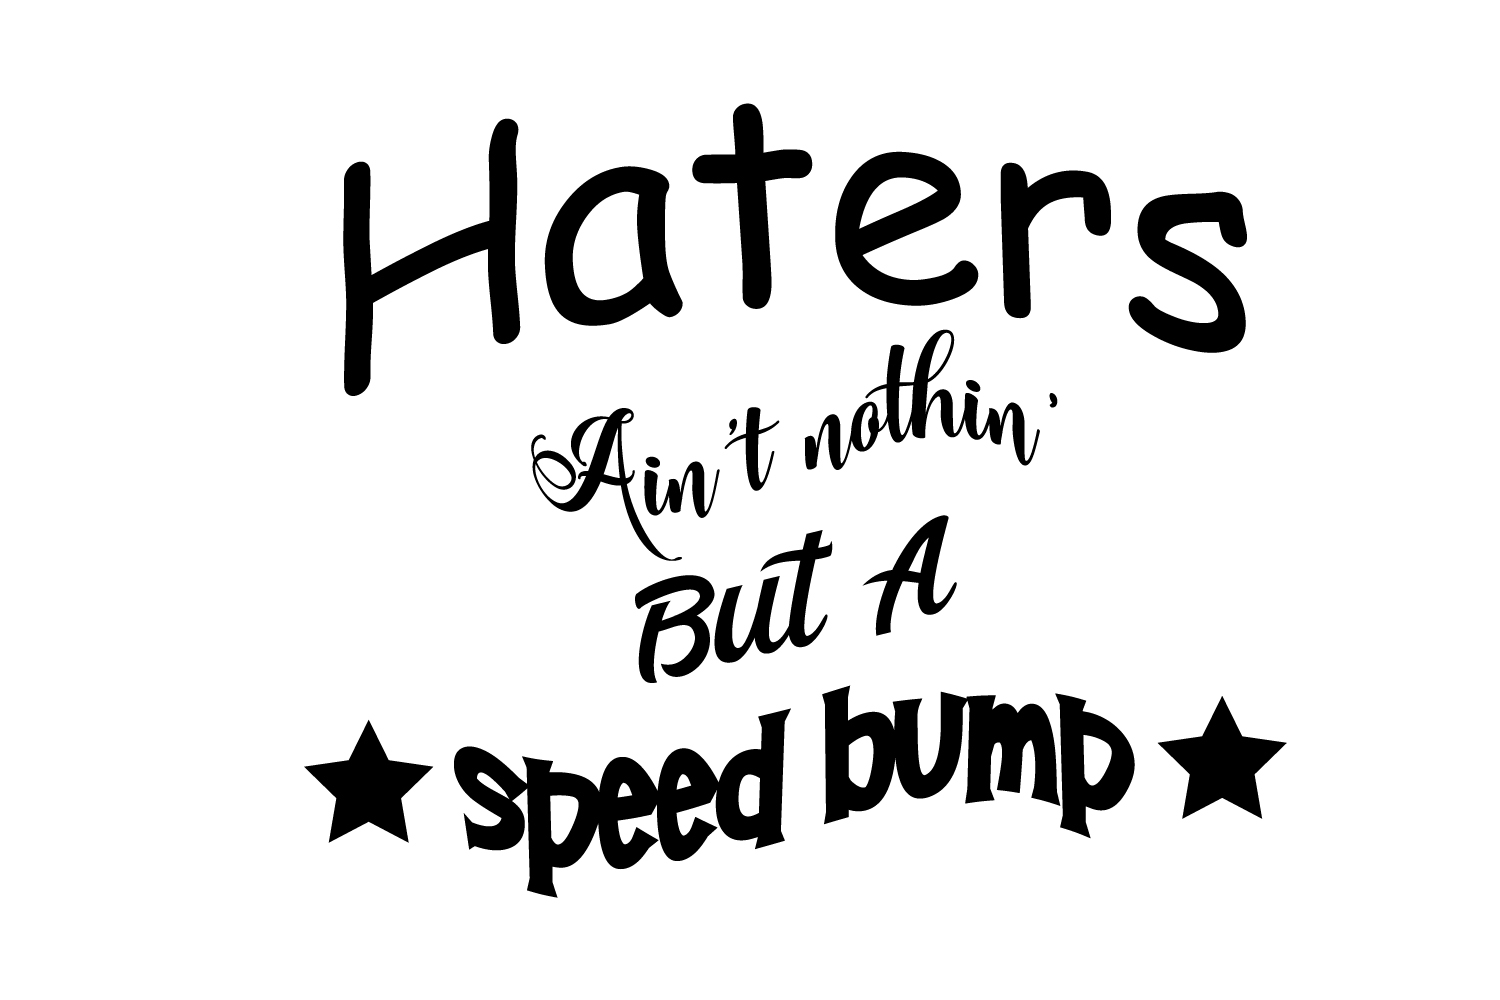 Haters Ain't Nothin' But A Speedbump example image 2